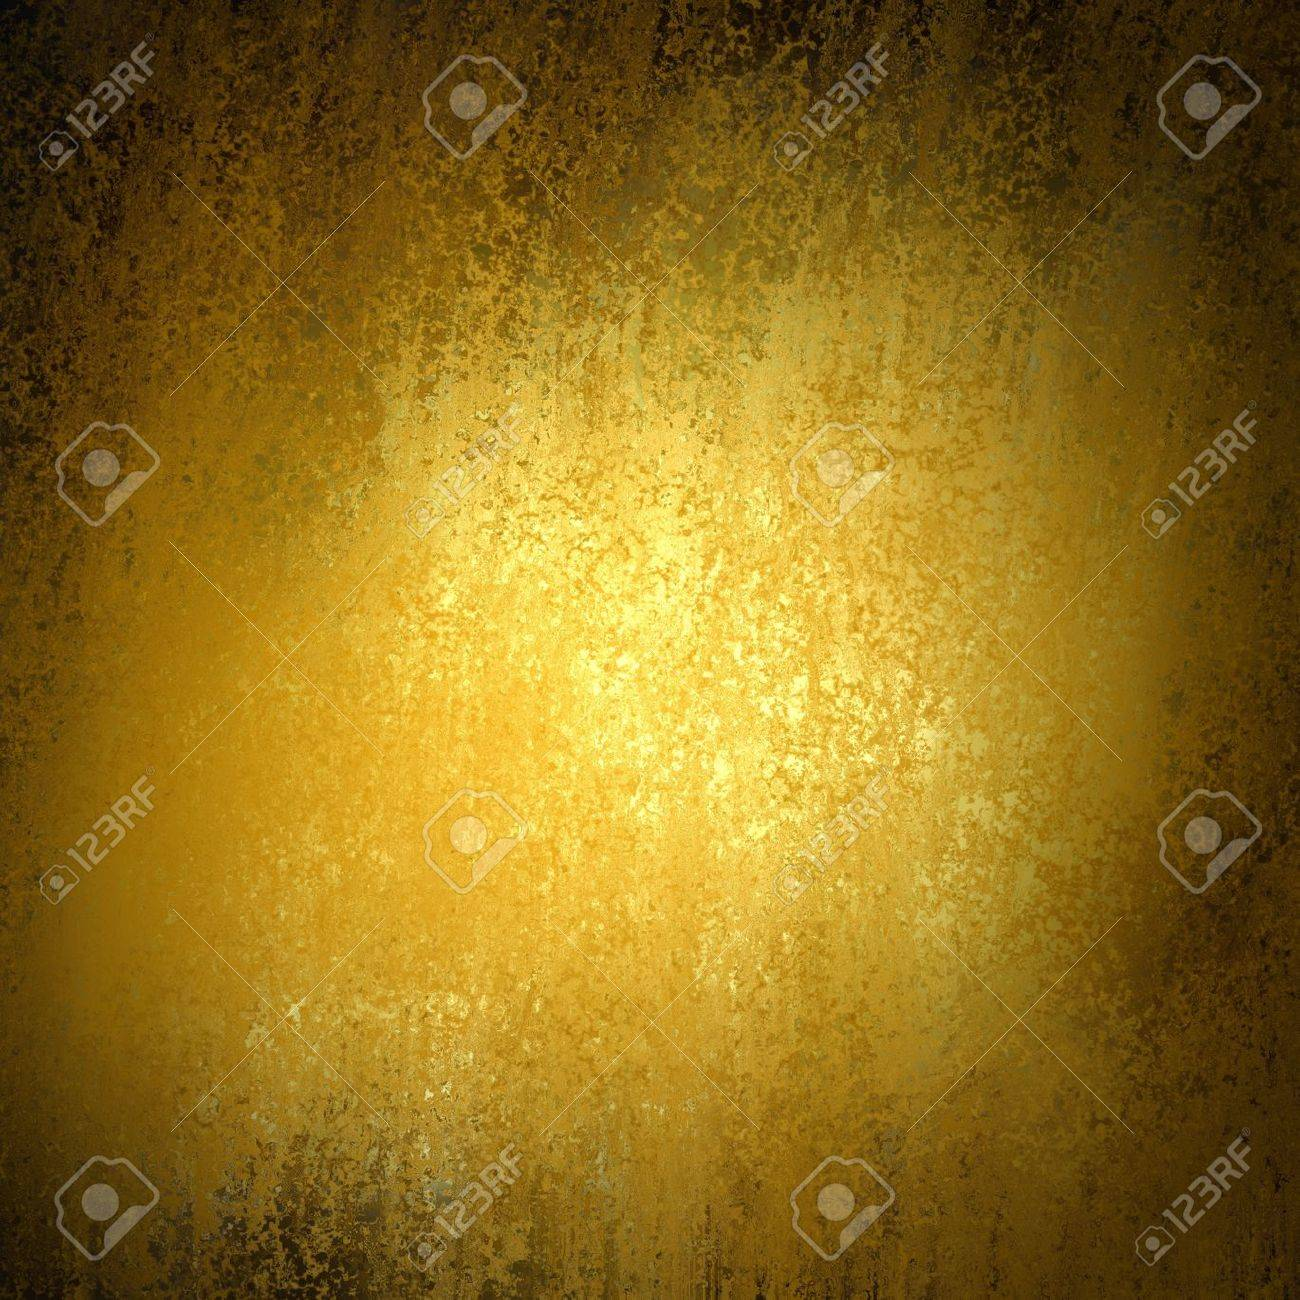 vintage gold background texture with dark black vignette border, old luxury background with shiny flecks of gold paint, yellow background - 47465345